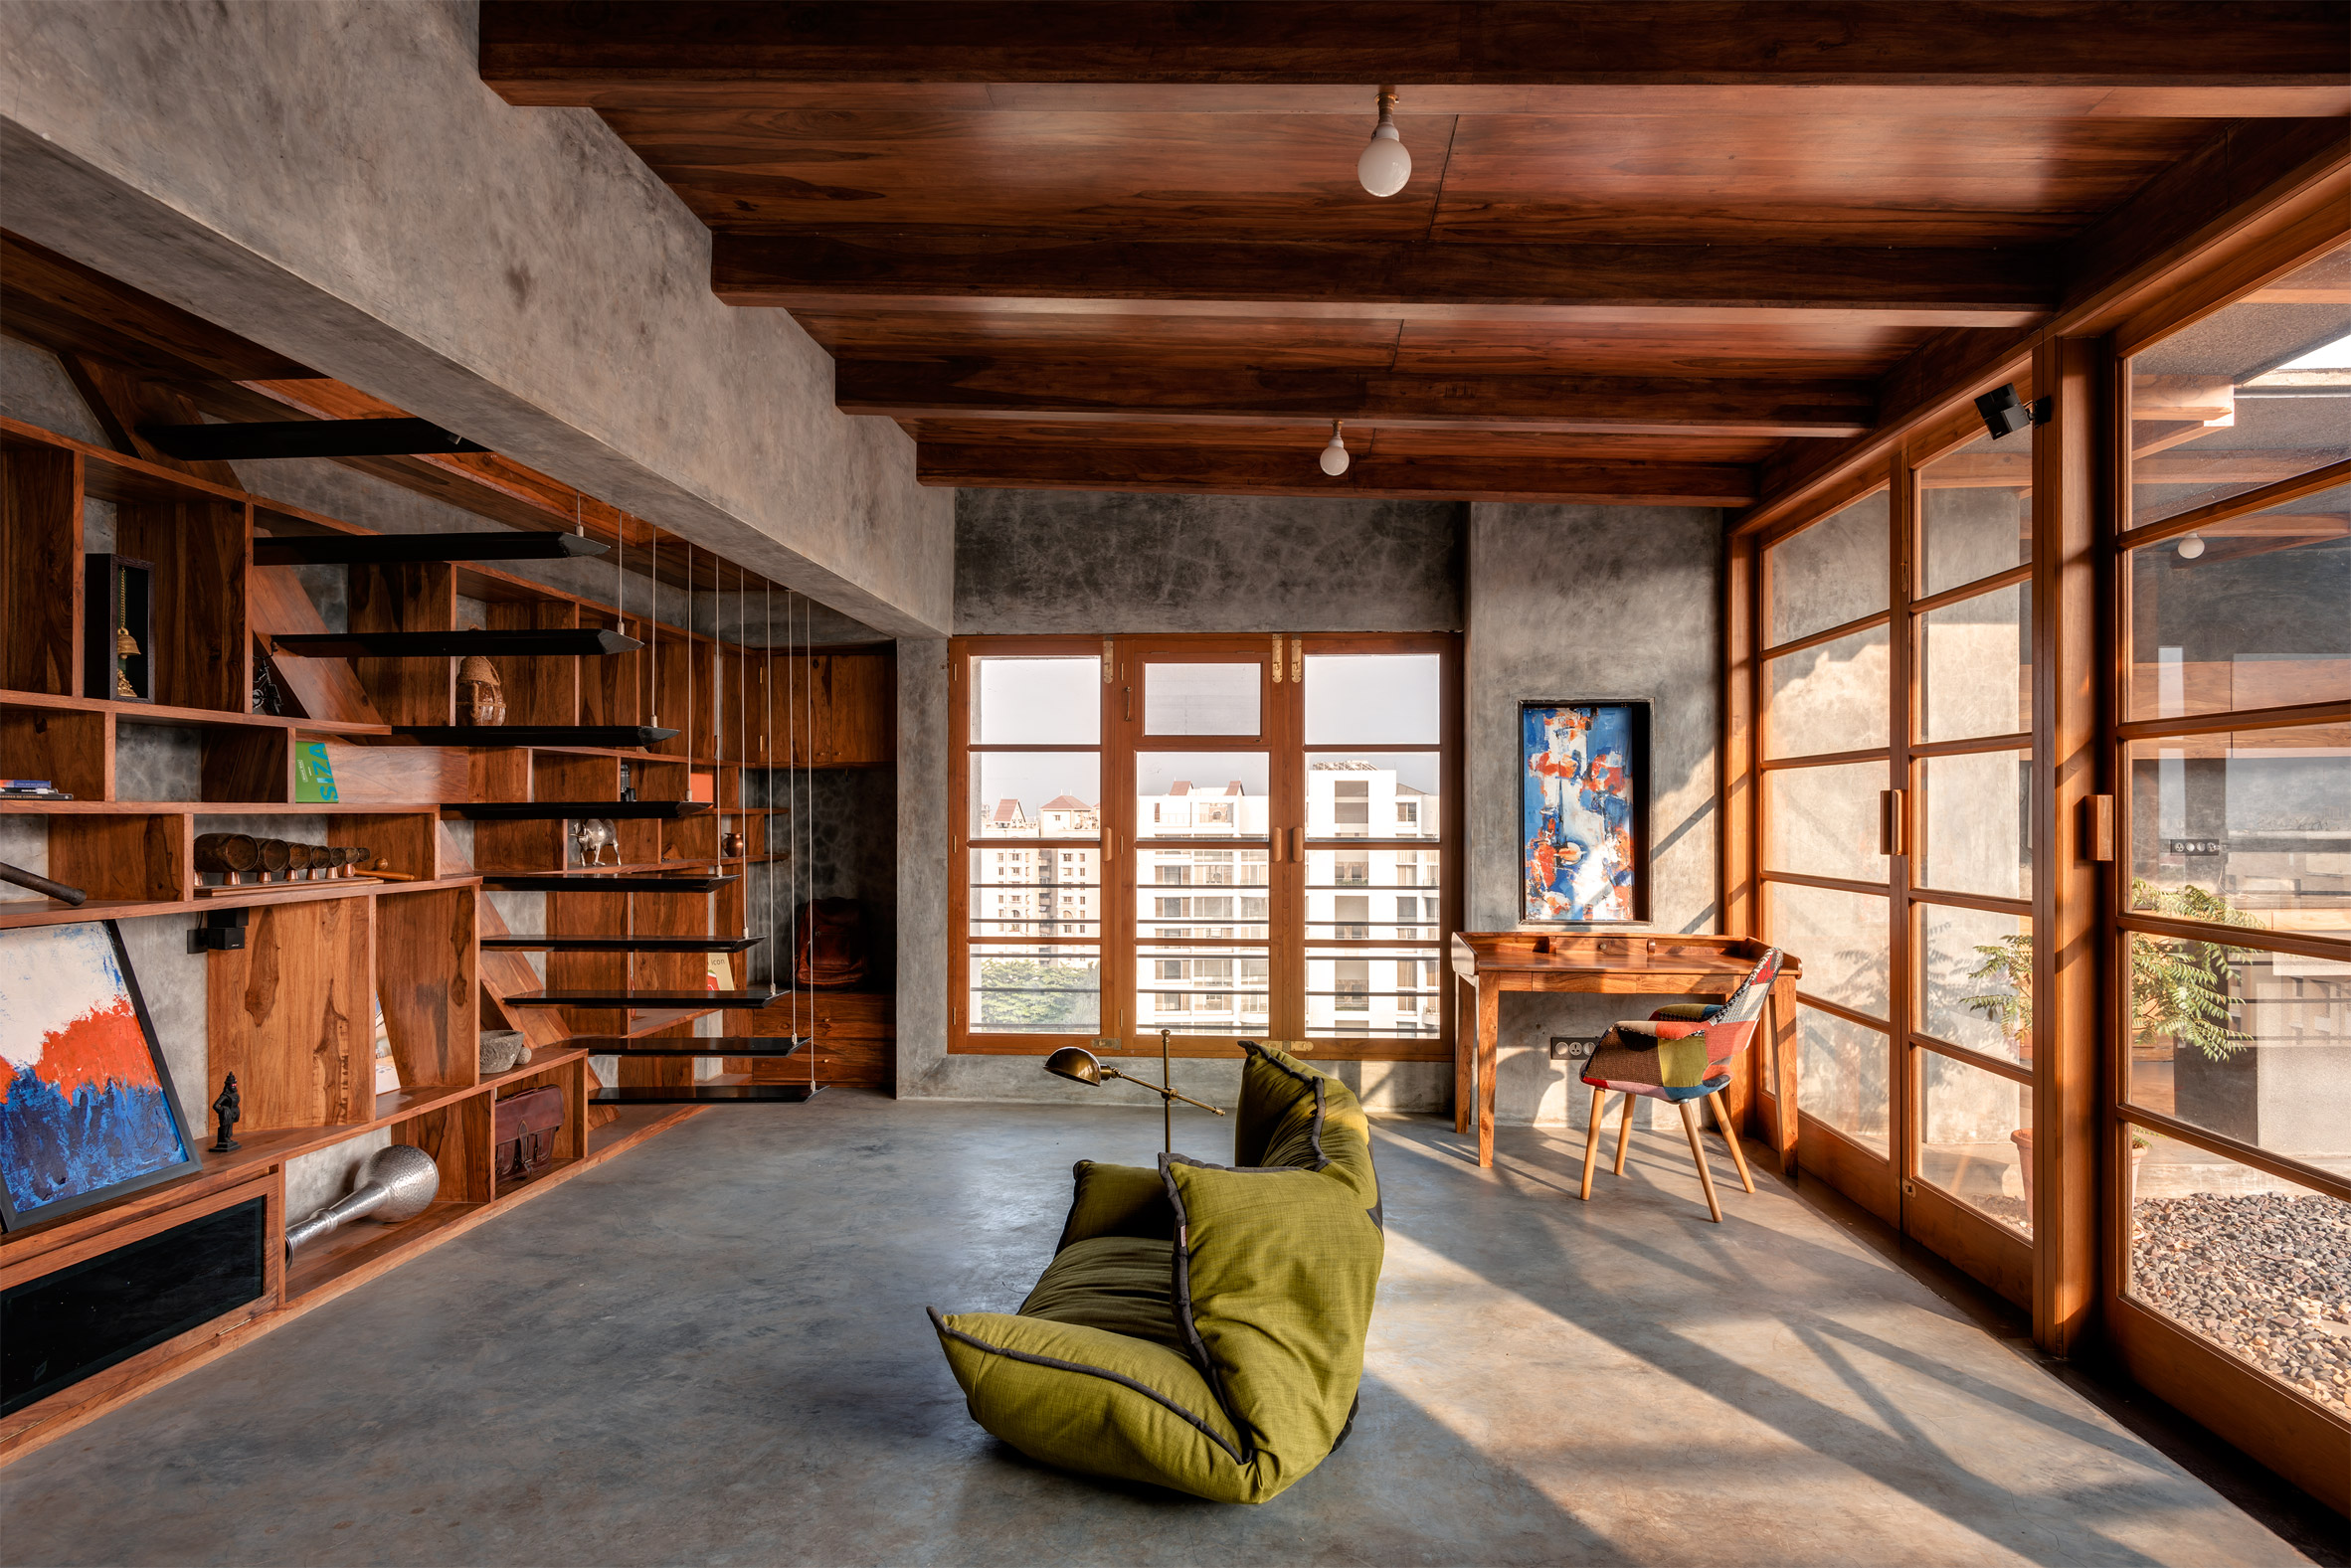 Penthouse apartment in India revamped by Studio Course to mimic a traditional veranda